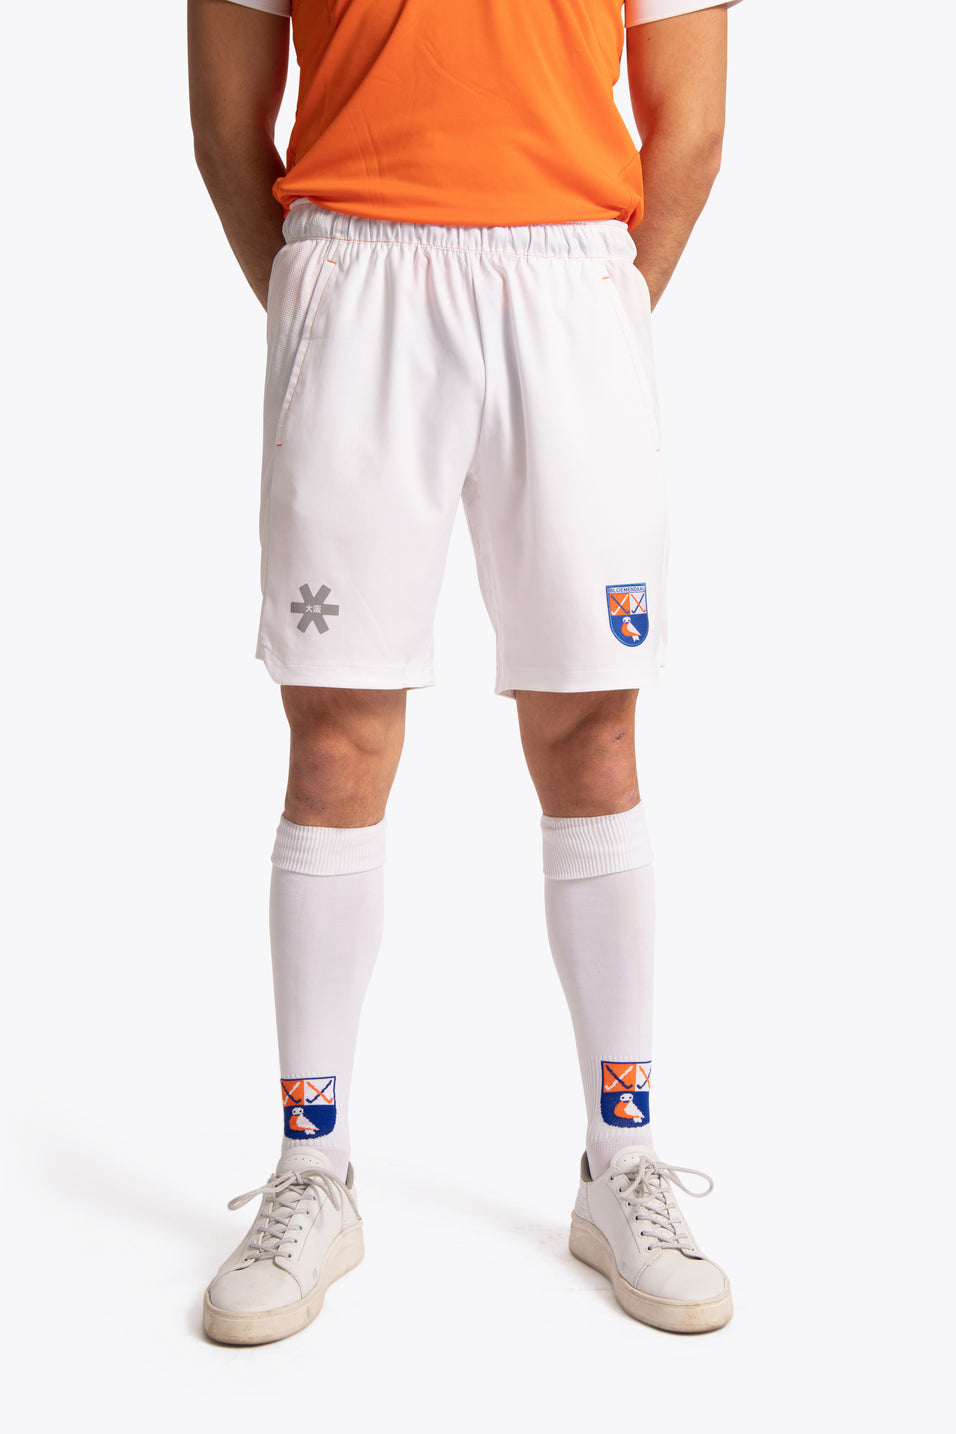 HC Bloemendaal Men Short - White